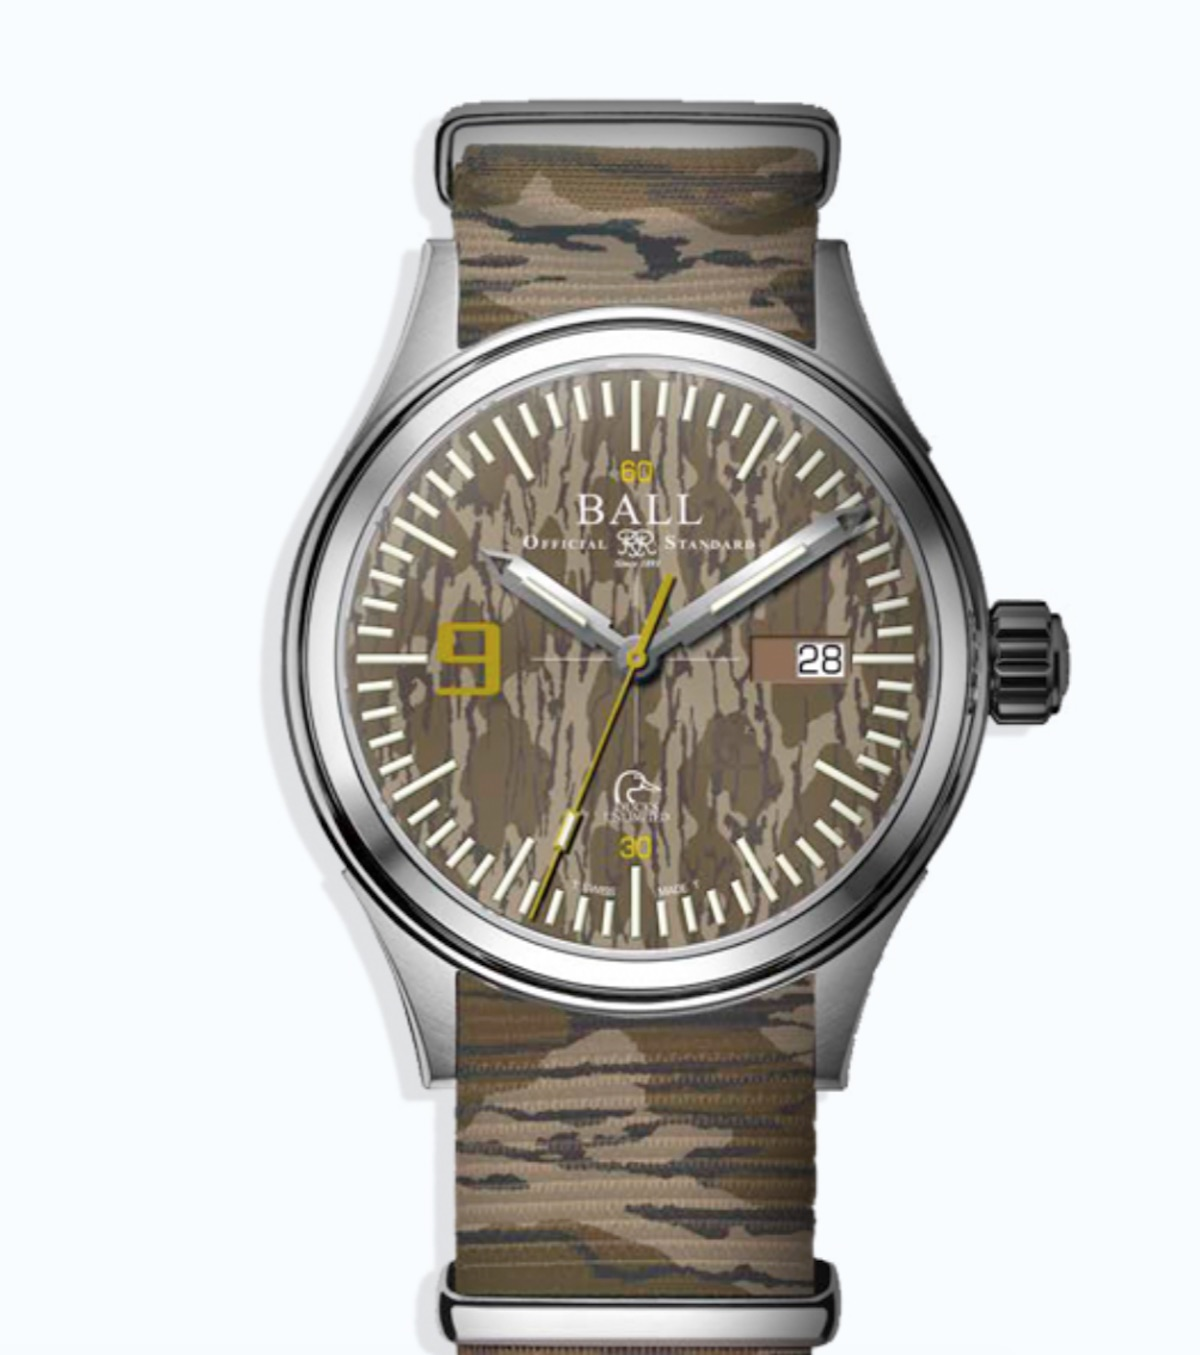 Ball Fireman Ducks Unlimited Watch